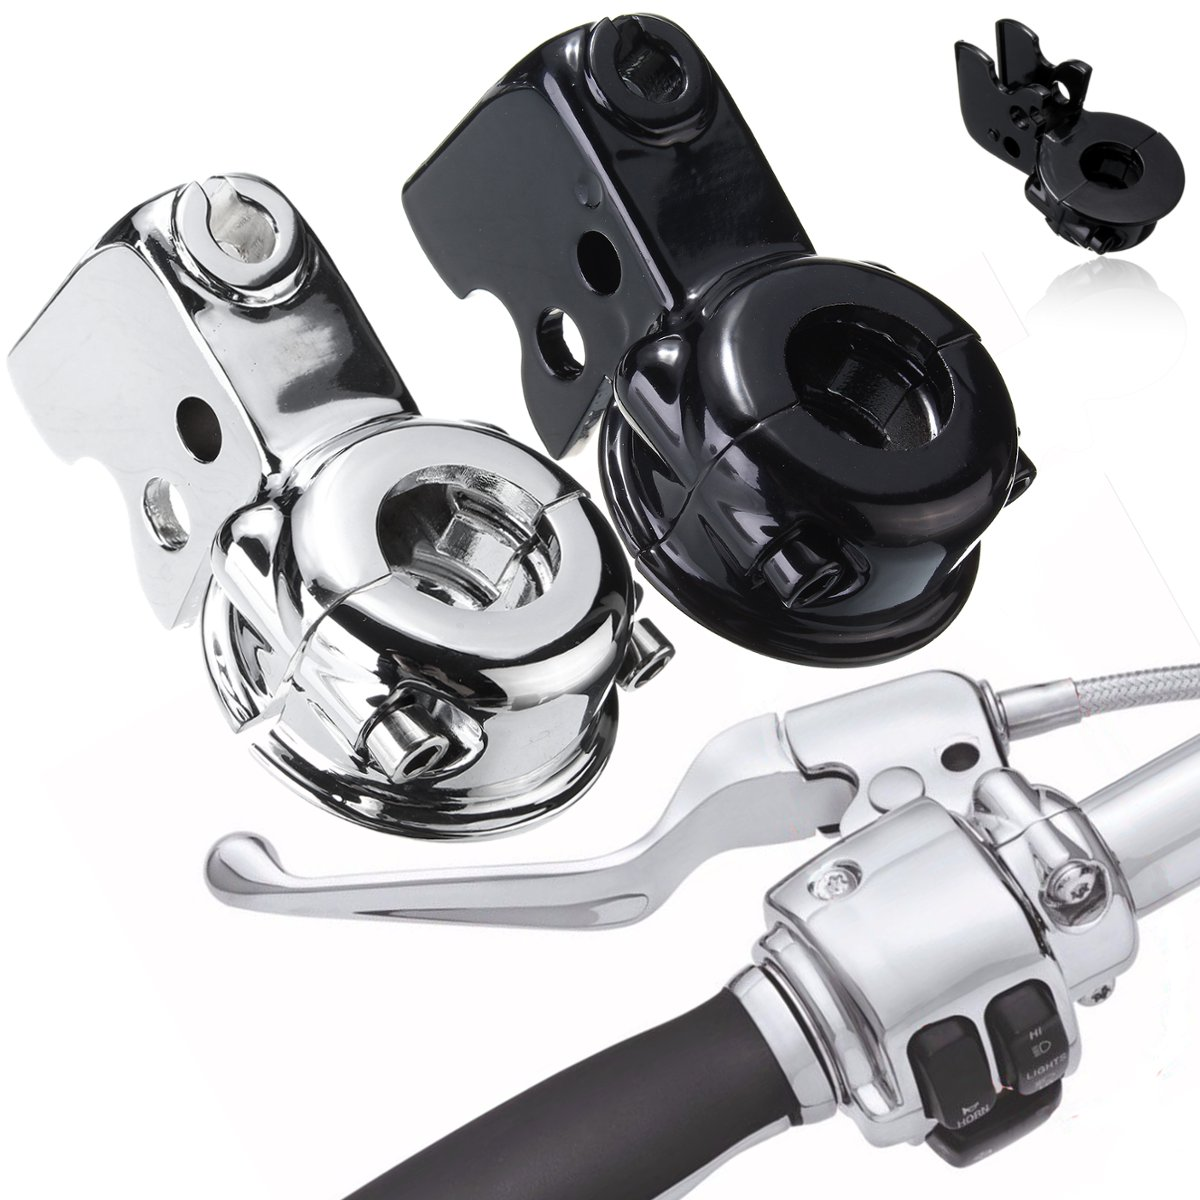 Motorcycle Clutch Lever Mount Bracket Perch For Harley Touring Glide Softail Dyna Sportster 883 Chrome Black